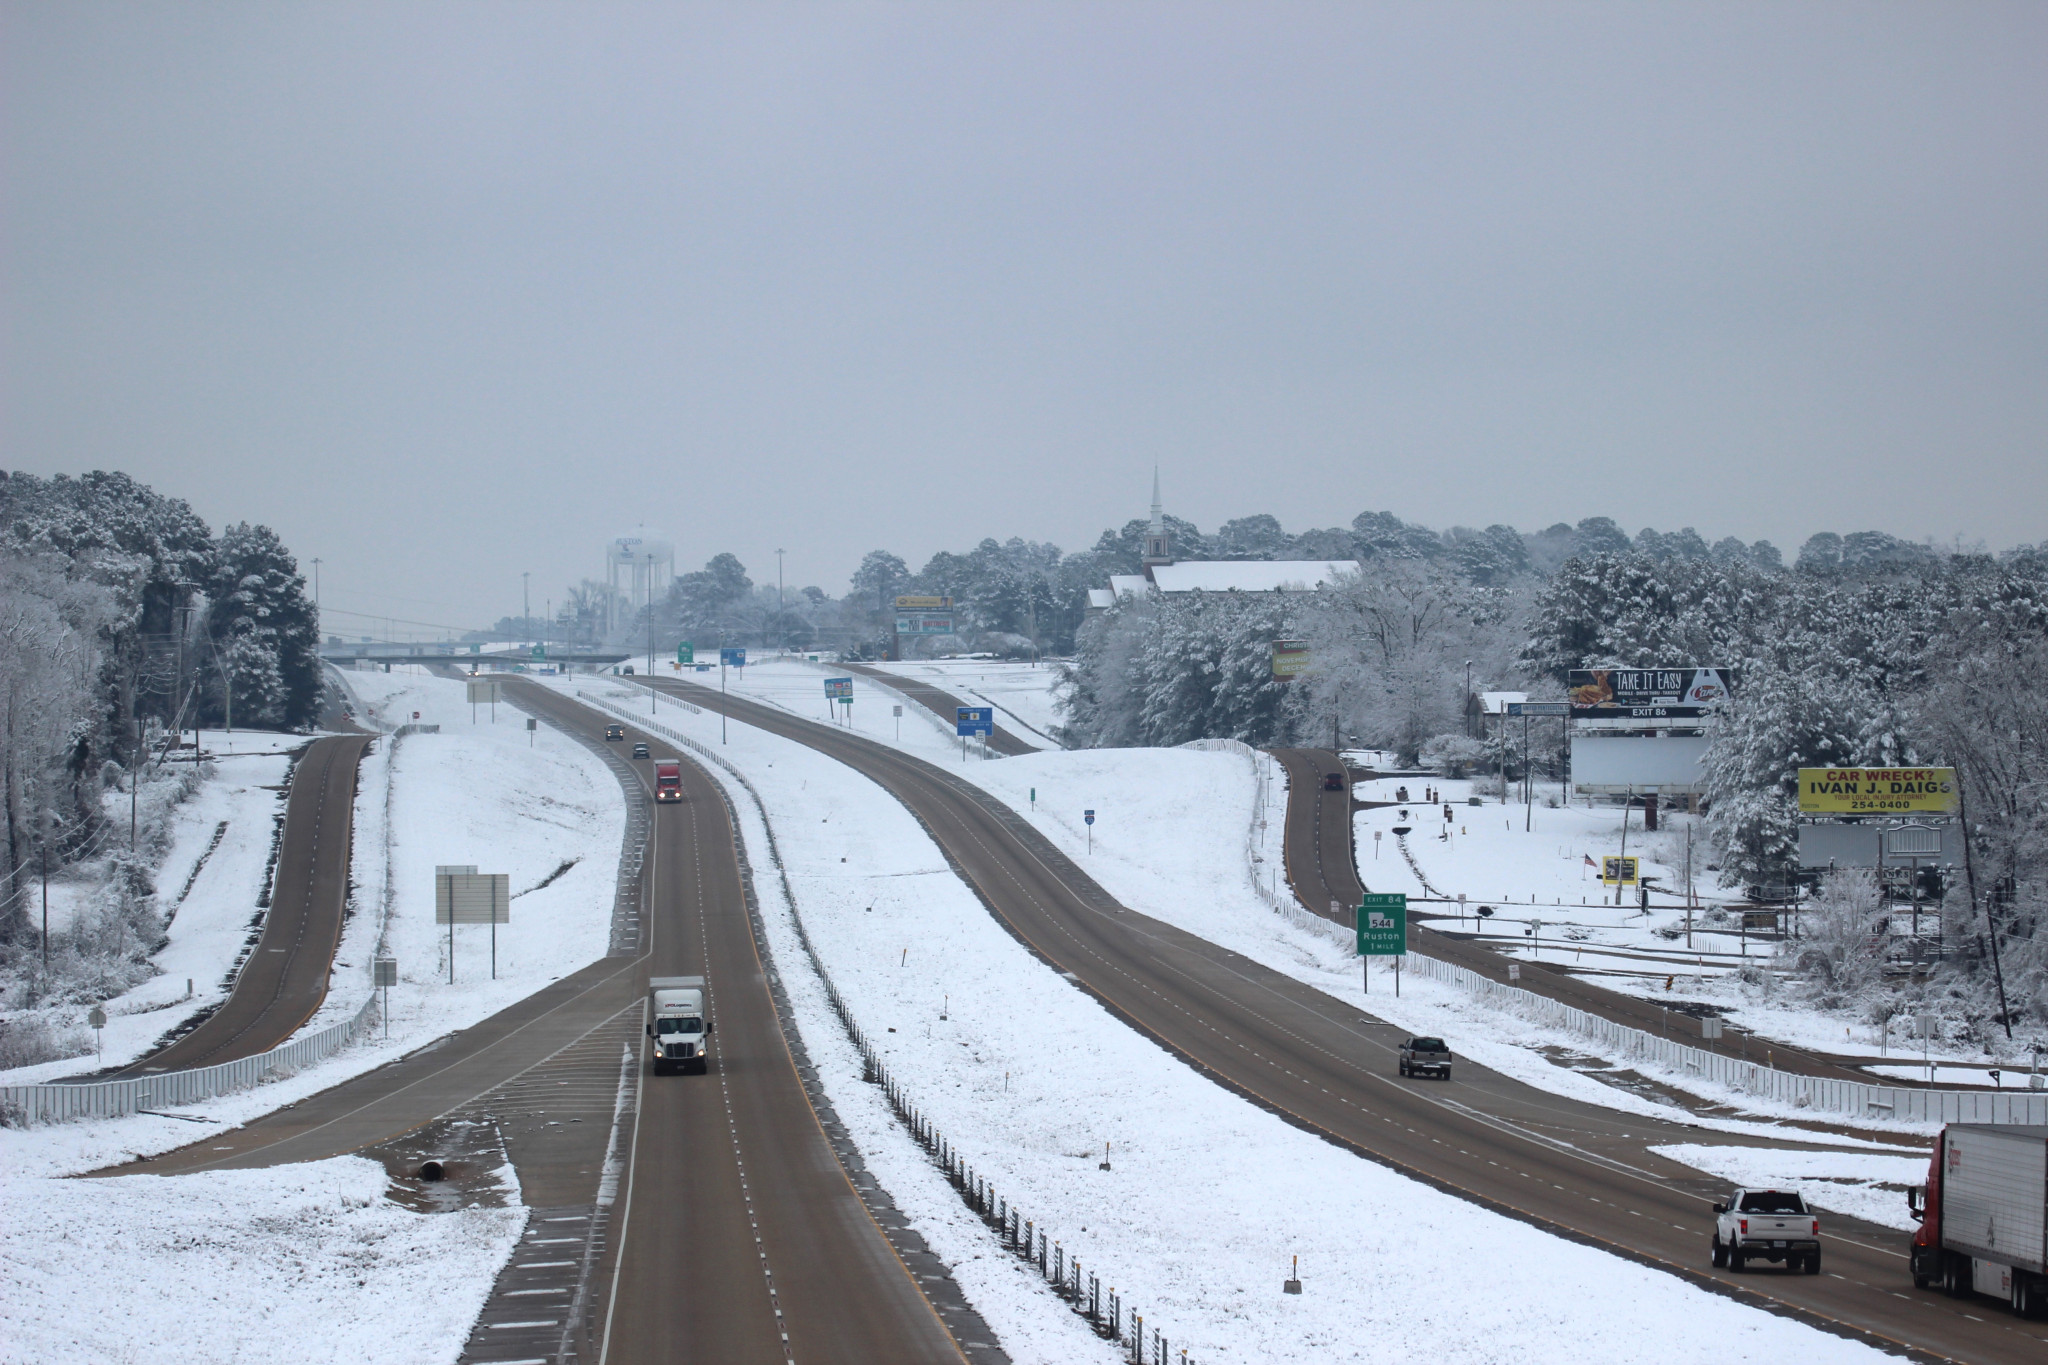 A wintry Interstate 20 - Leader photo by T. Scott Boatright